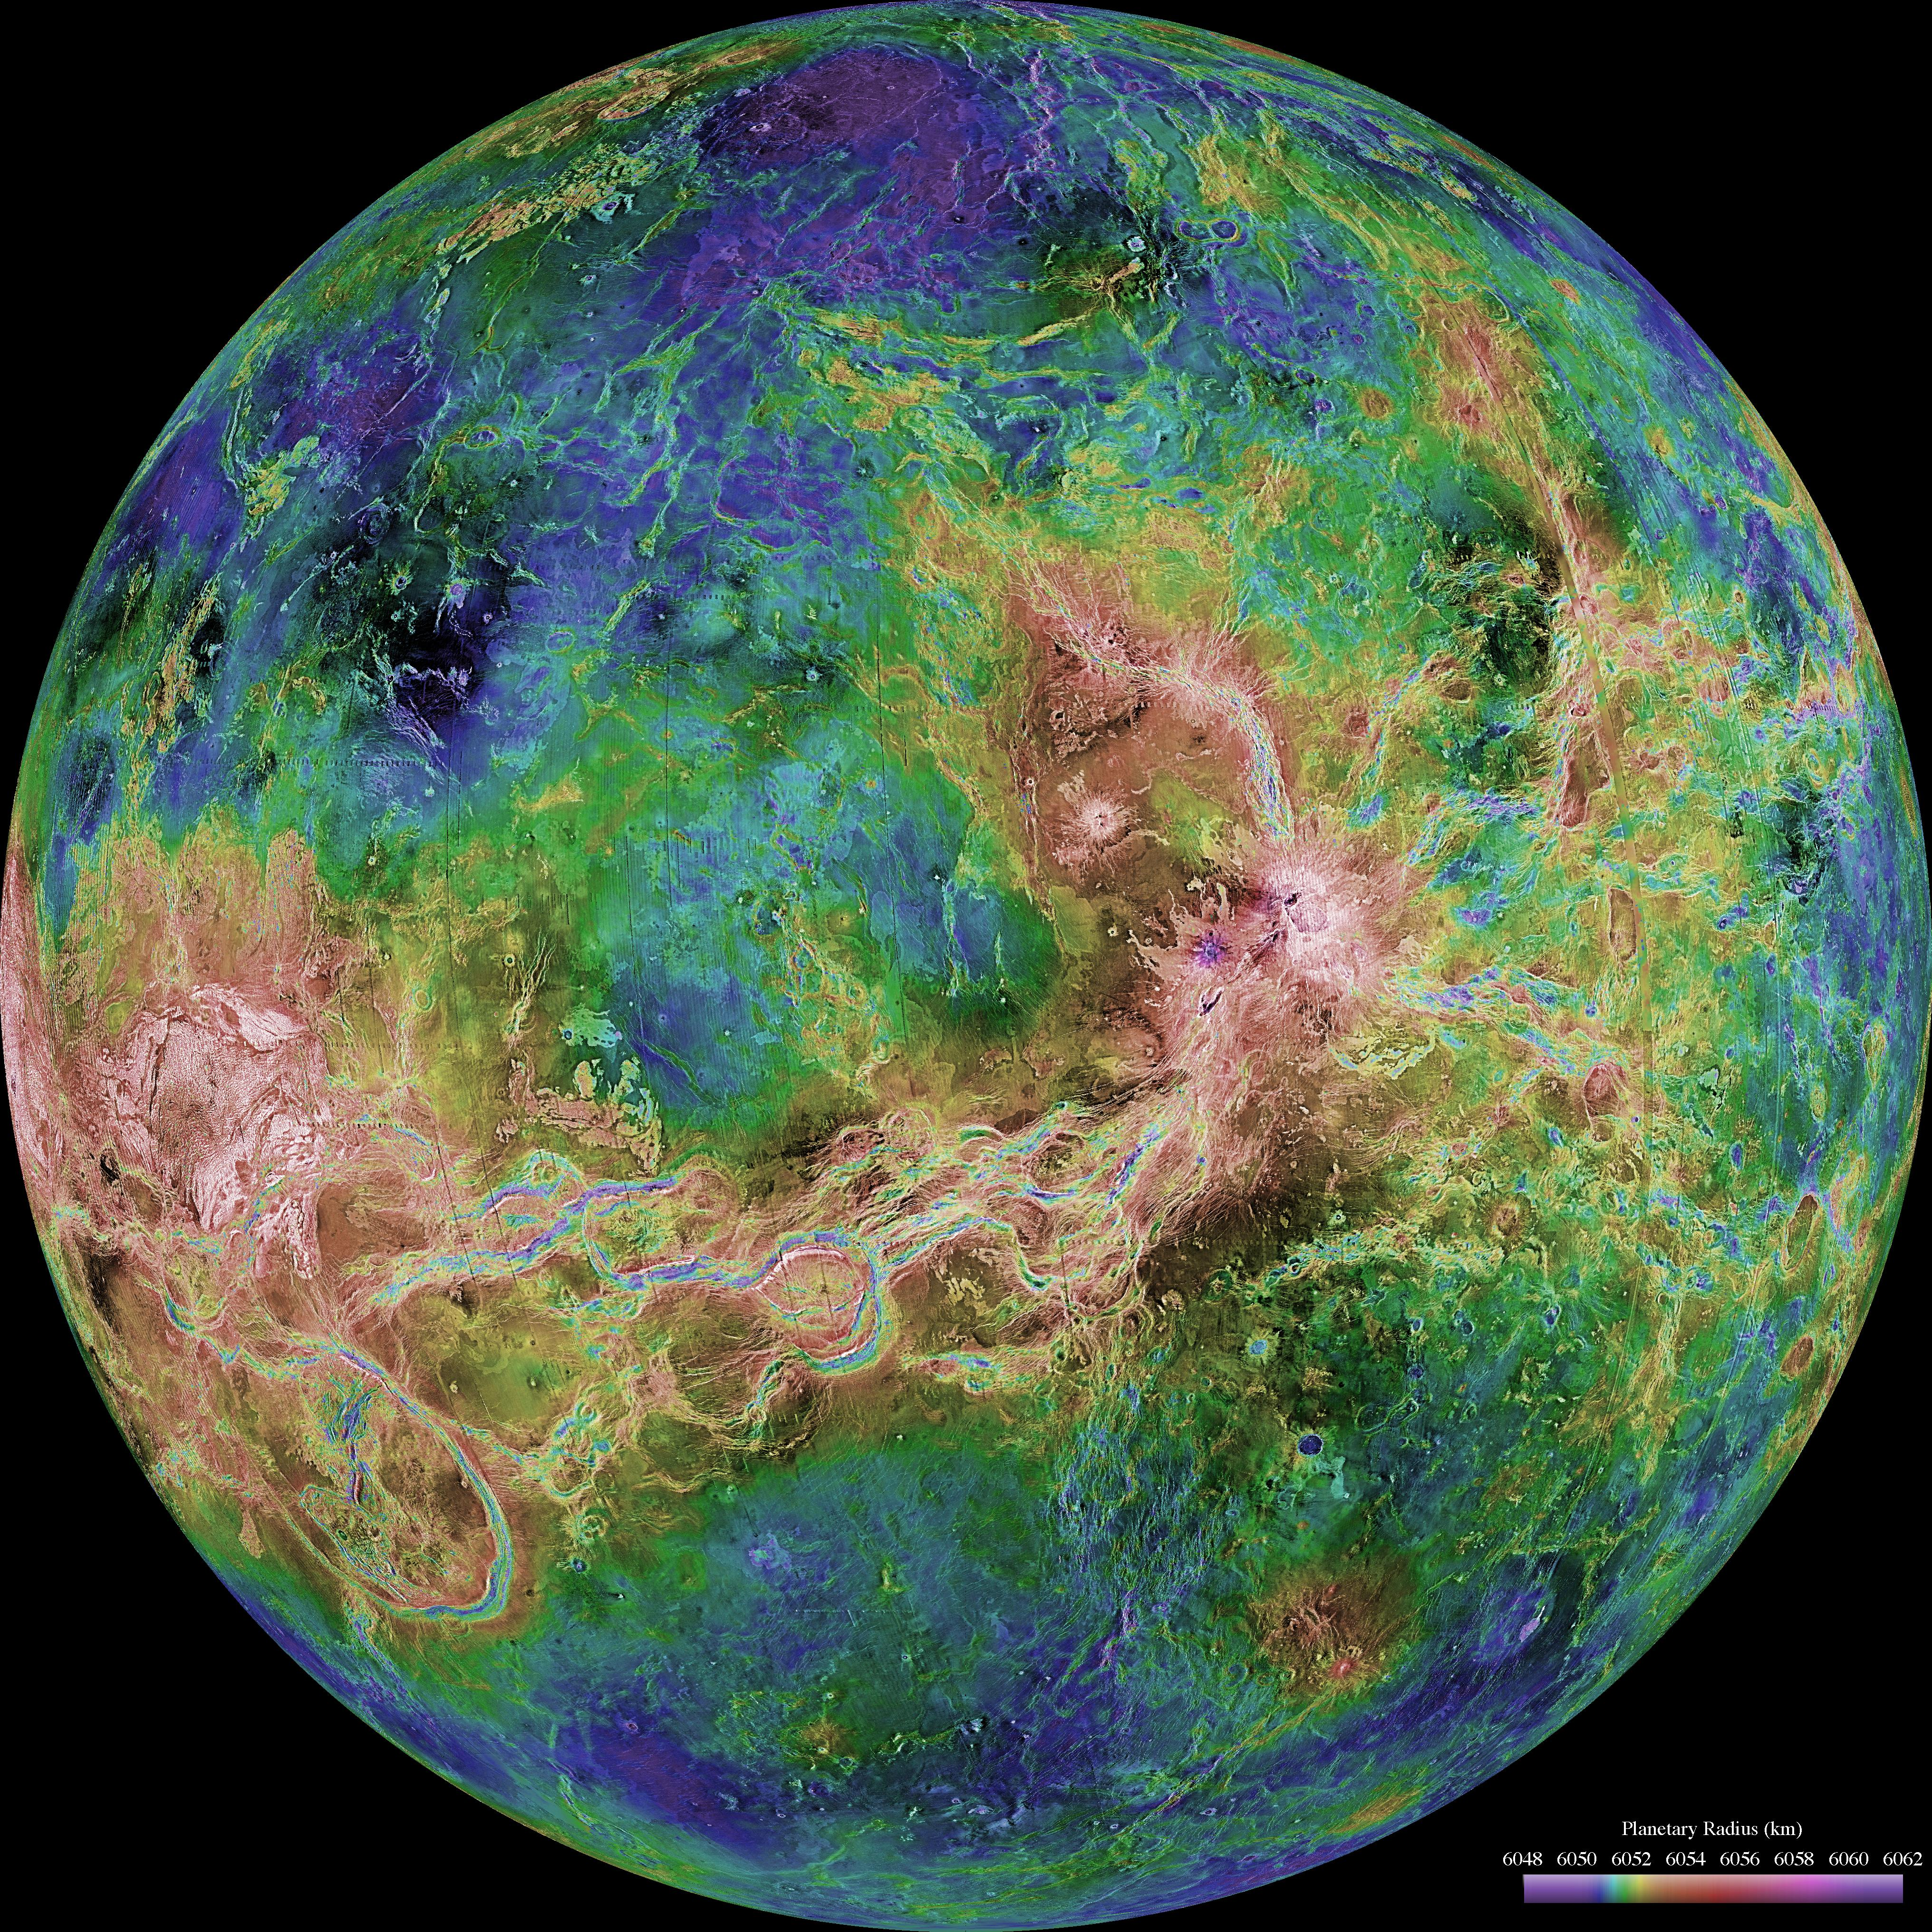 The hemispheric view of Venus, as revealed by more than a decade of radar investigations culminating in the 1990-1994 Magellan mission, is centered at 180 degrees east longitude.